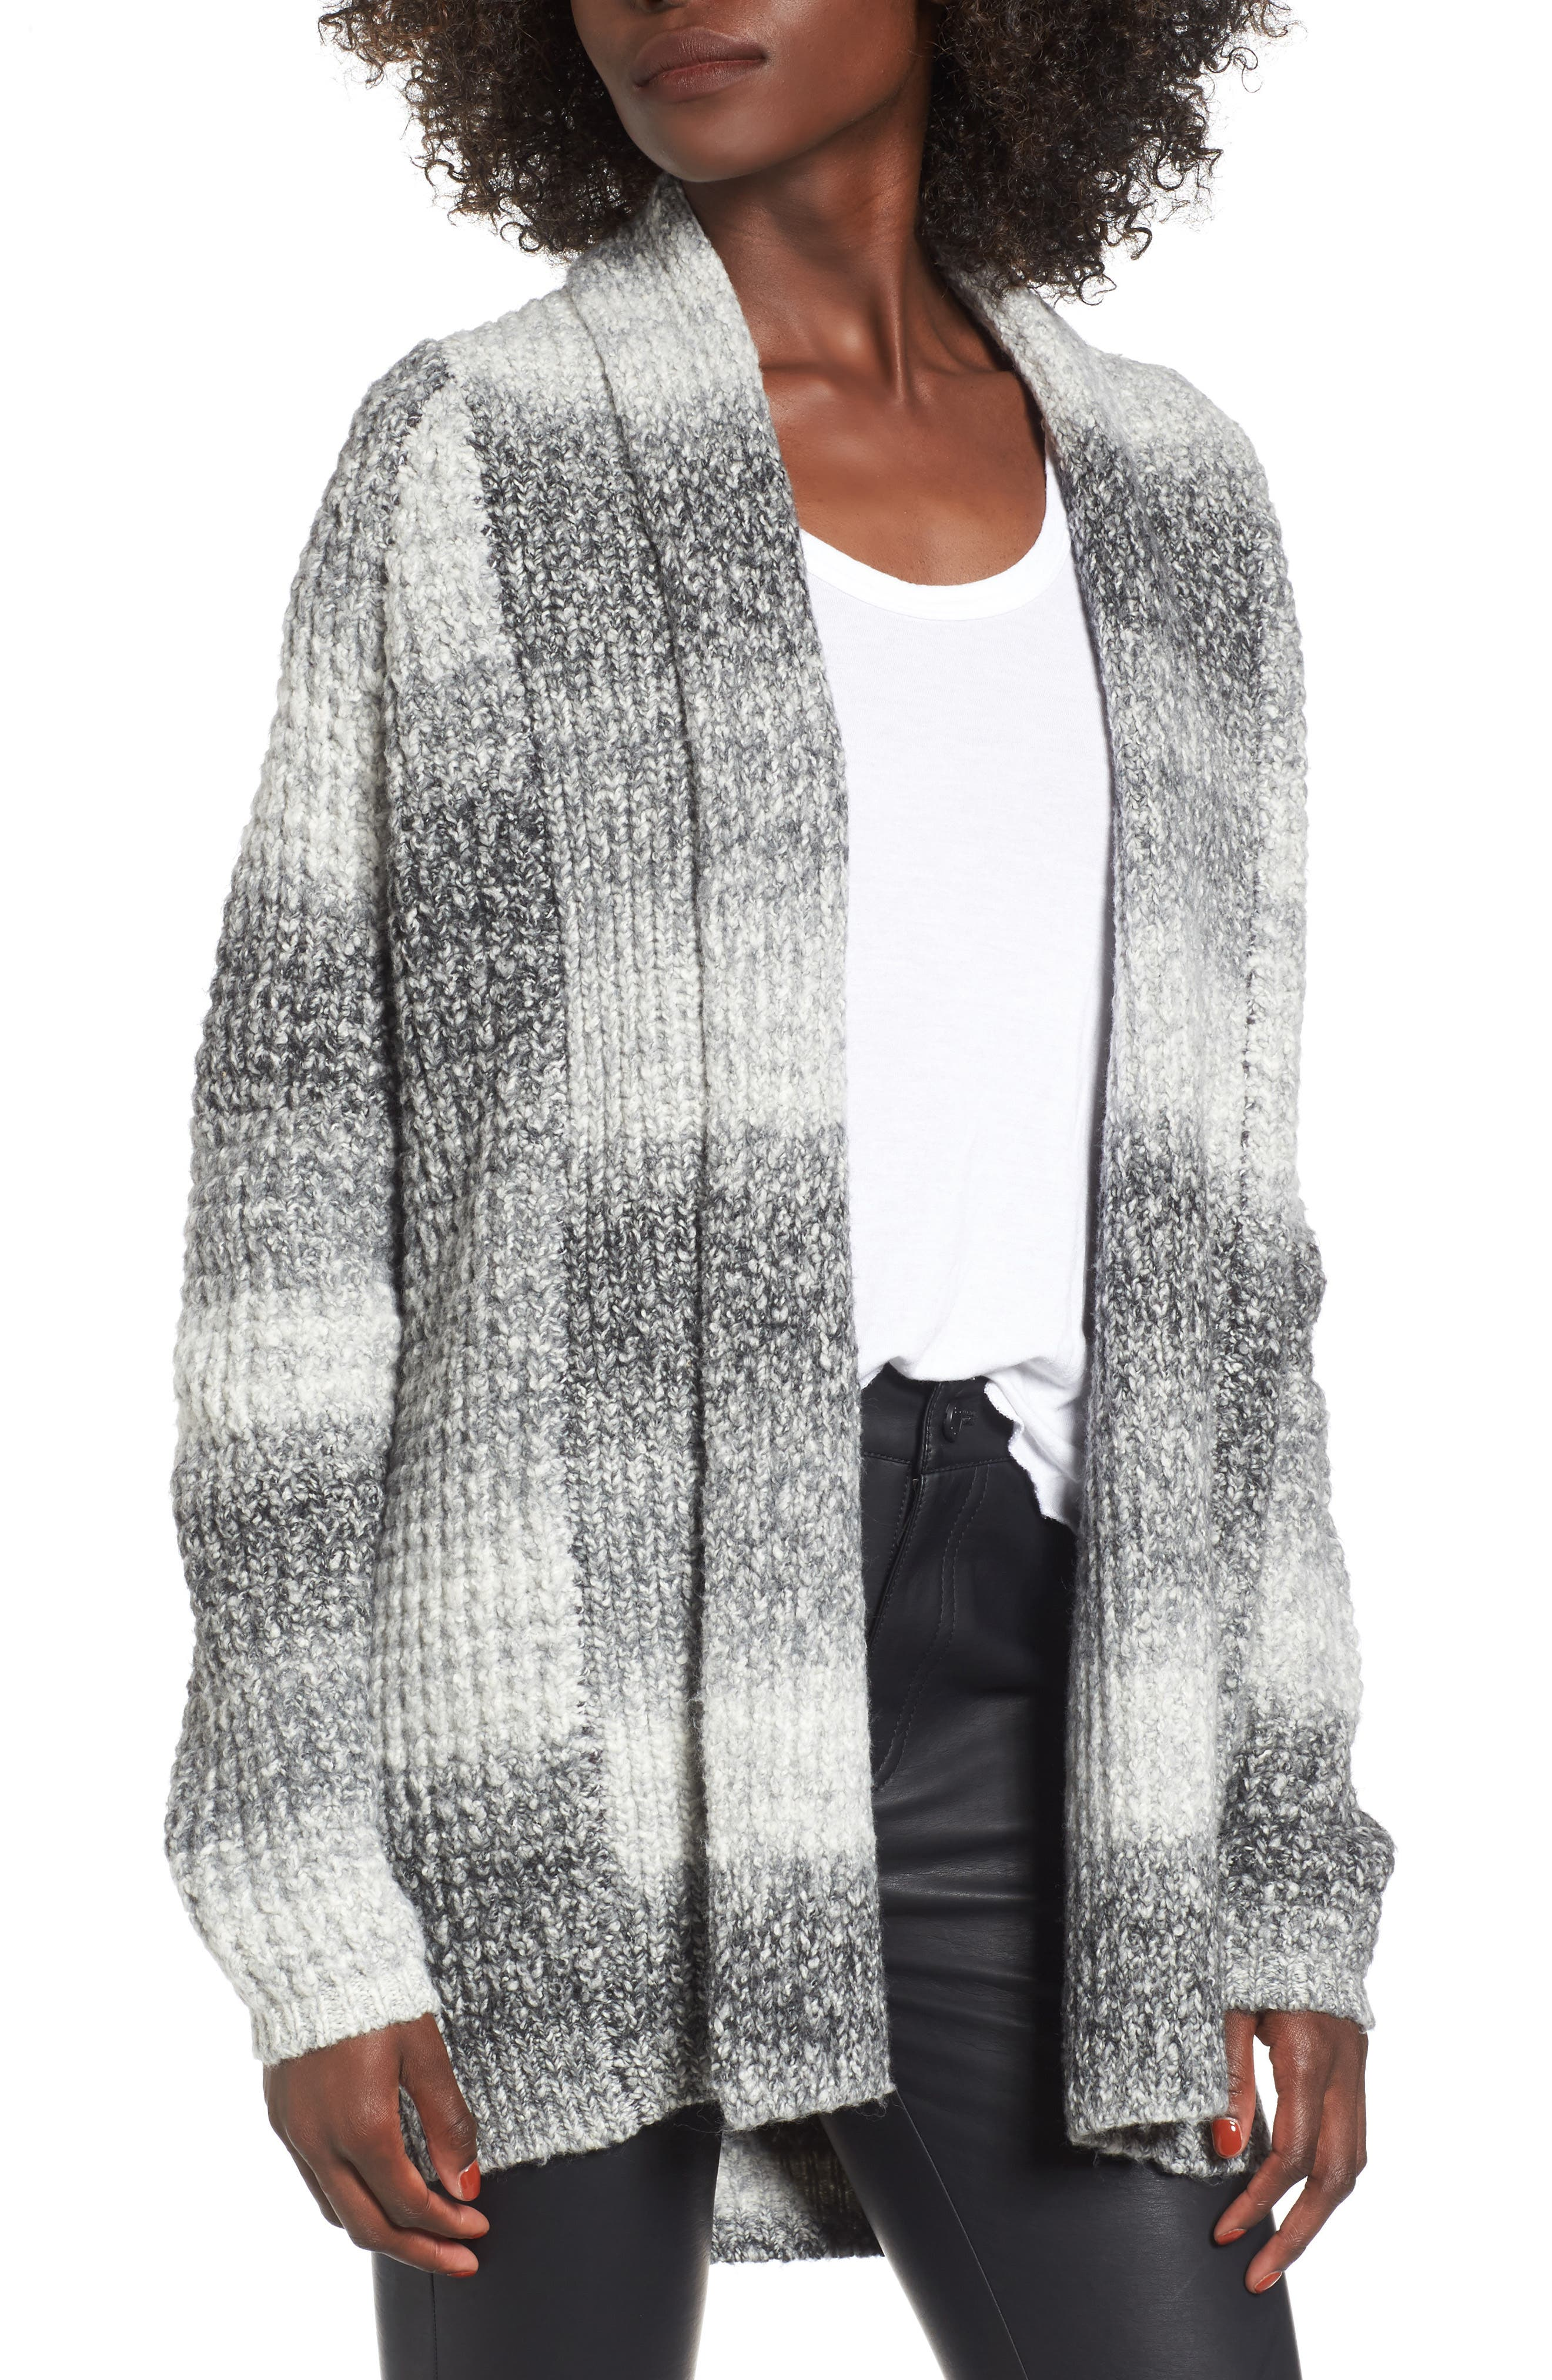 Ombré Cardigan,                         Main,                         color, Grey Cloudy Ombre